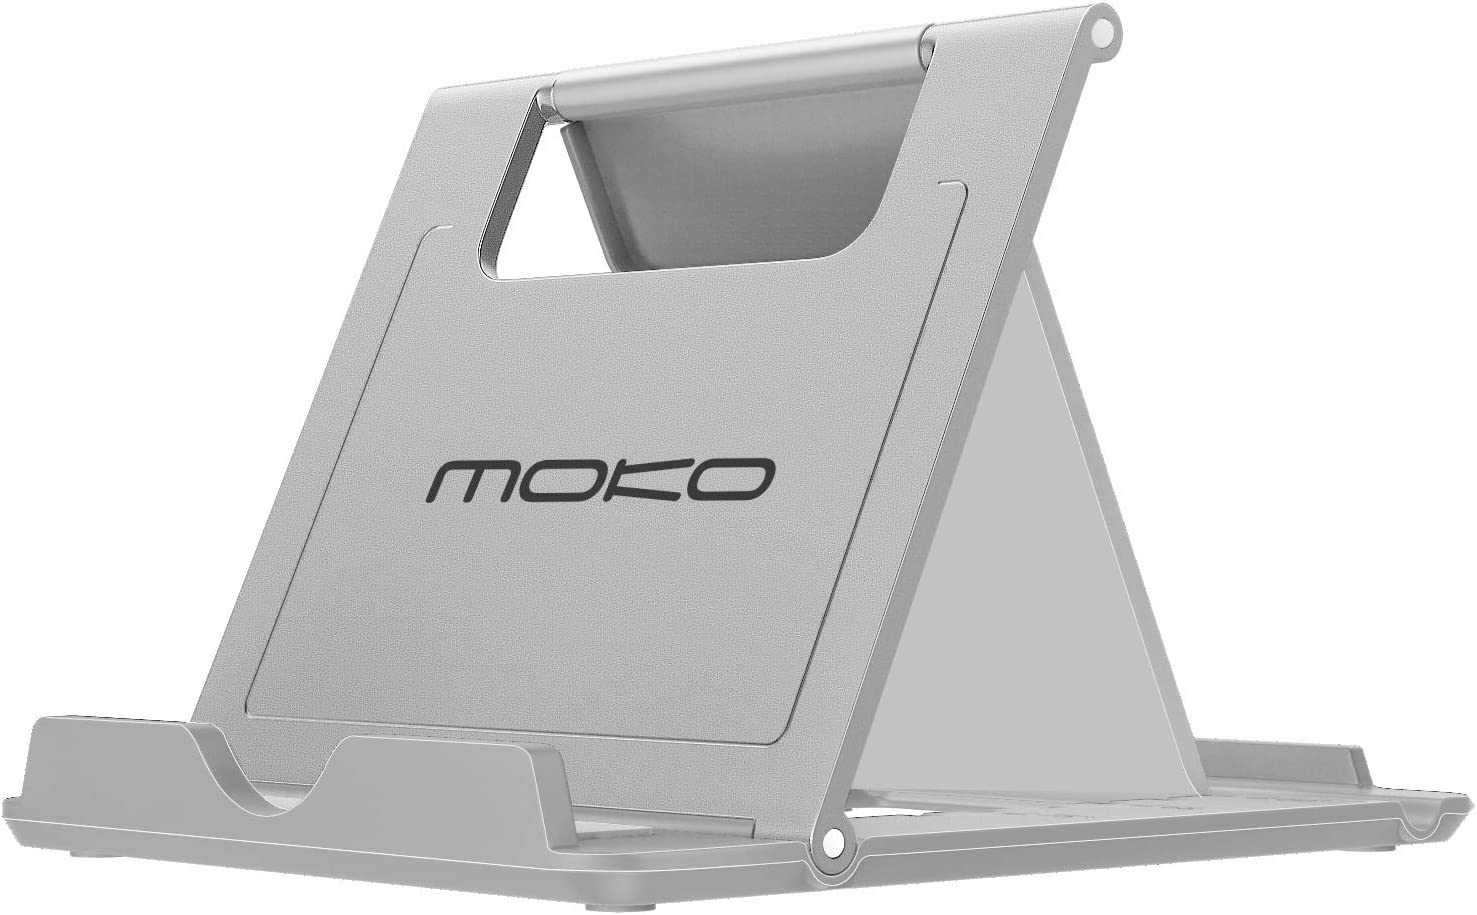 MoKo Phone/Tablet Stand, Foldable Tablet Holder Fit with iPhone 13 Pro Max/13 Pro/13, iPhone 12/12 pro Max/11/Xs Max, iPad Pro 11, iPad Air 4/Mini 6 2021, iPad 9th 10.2